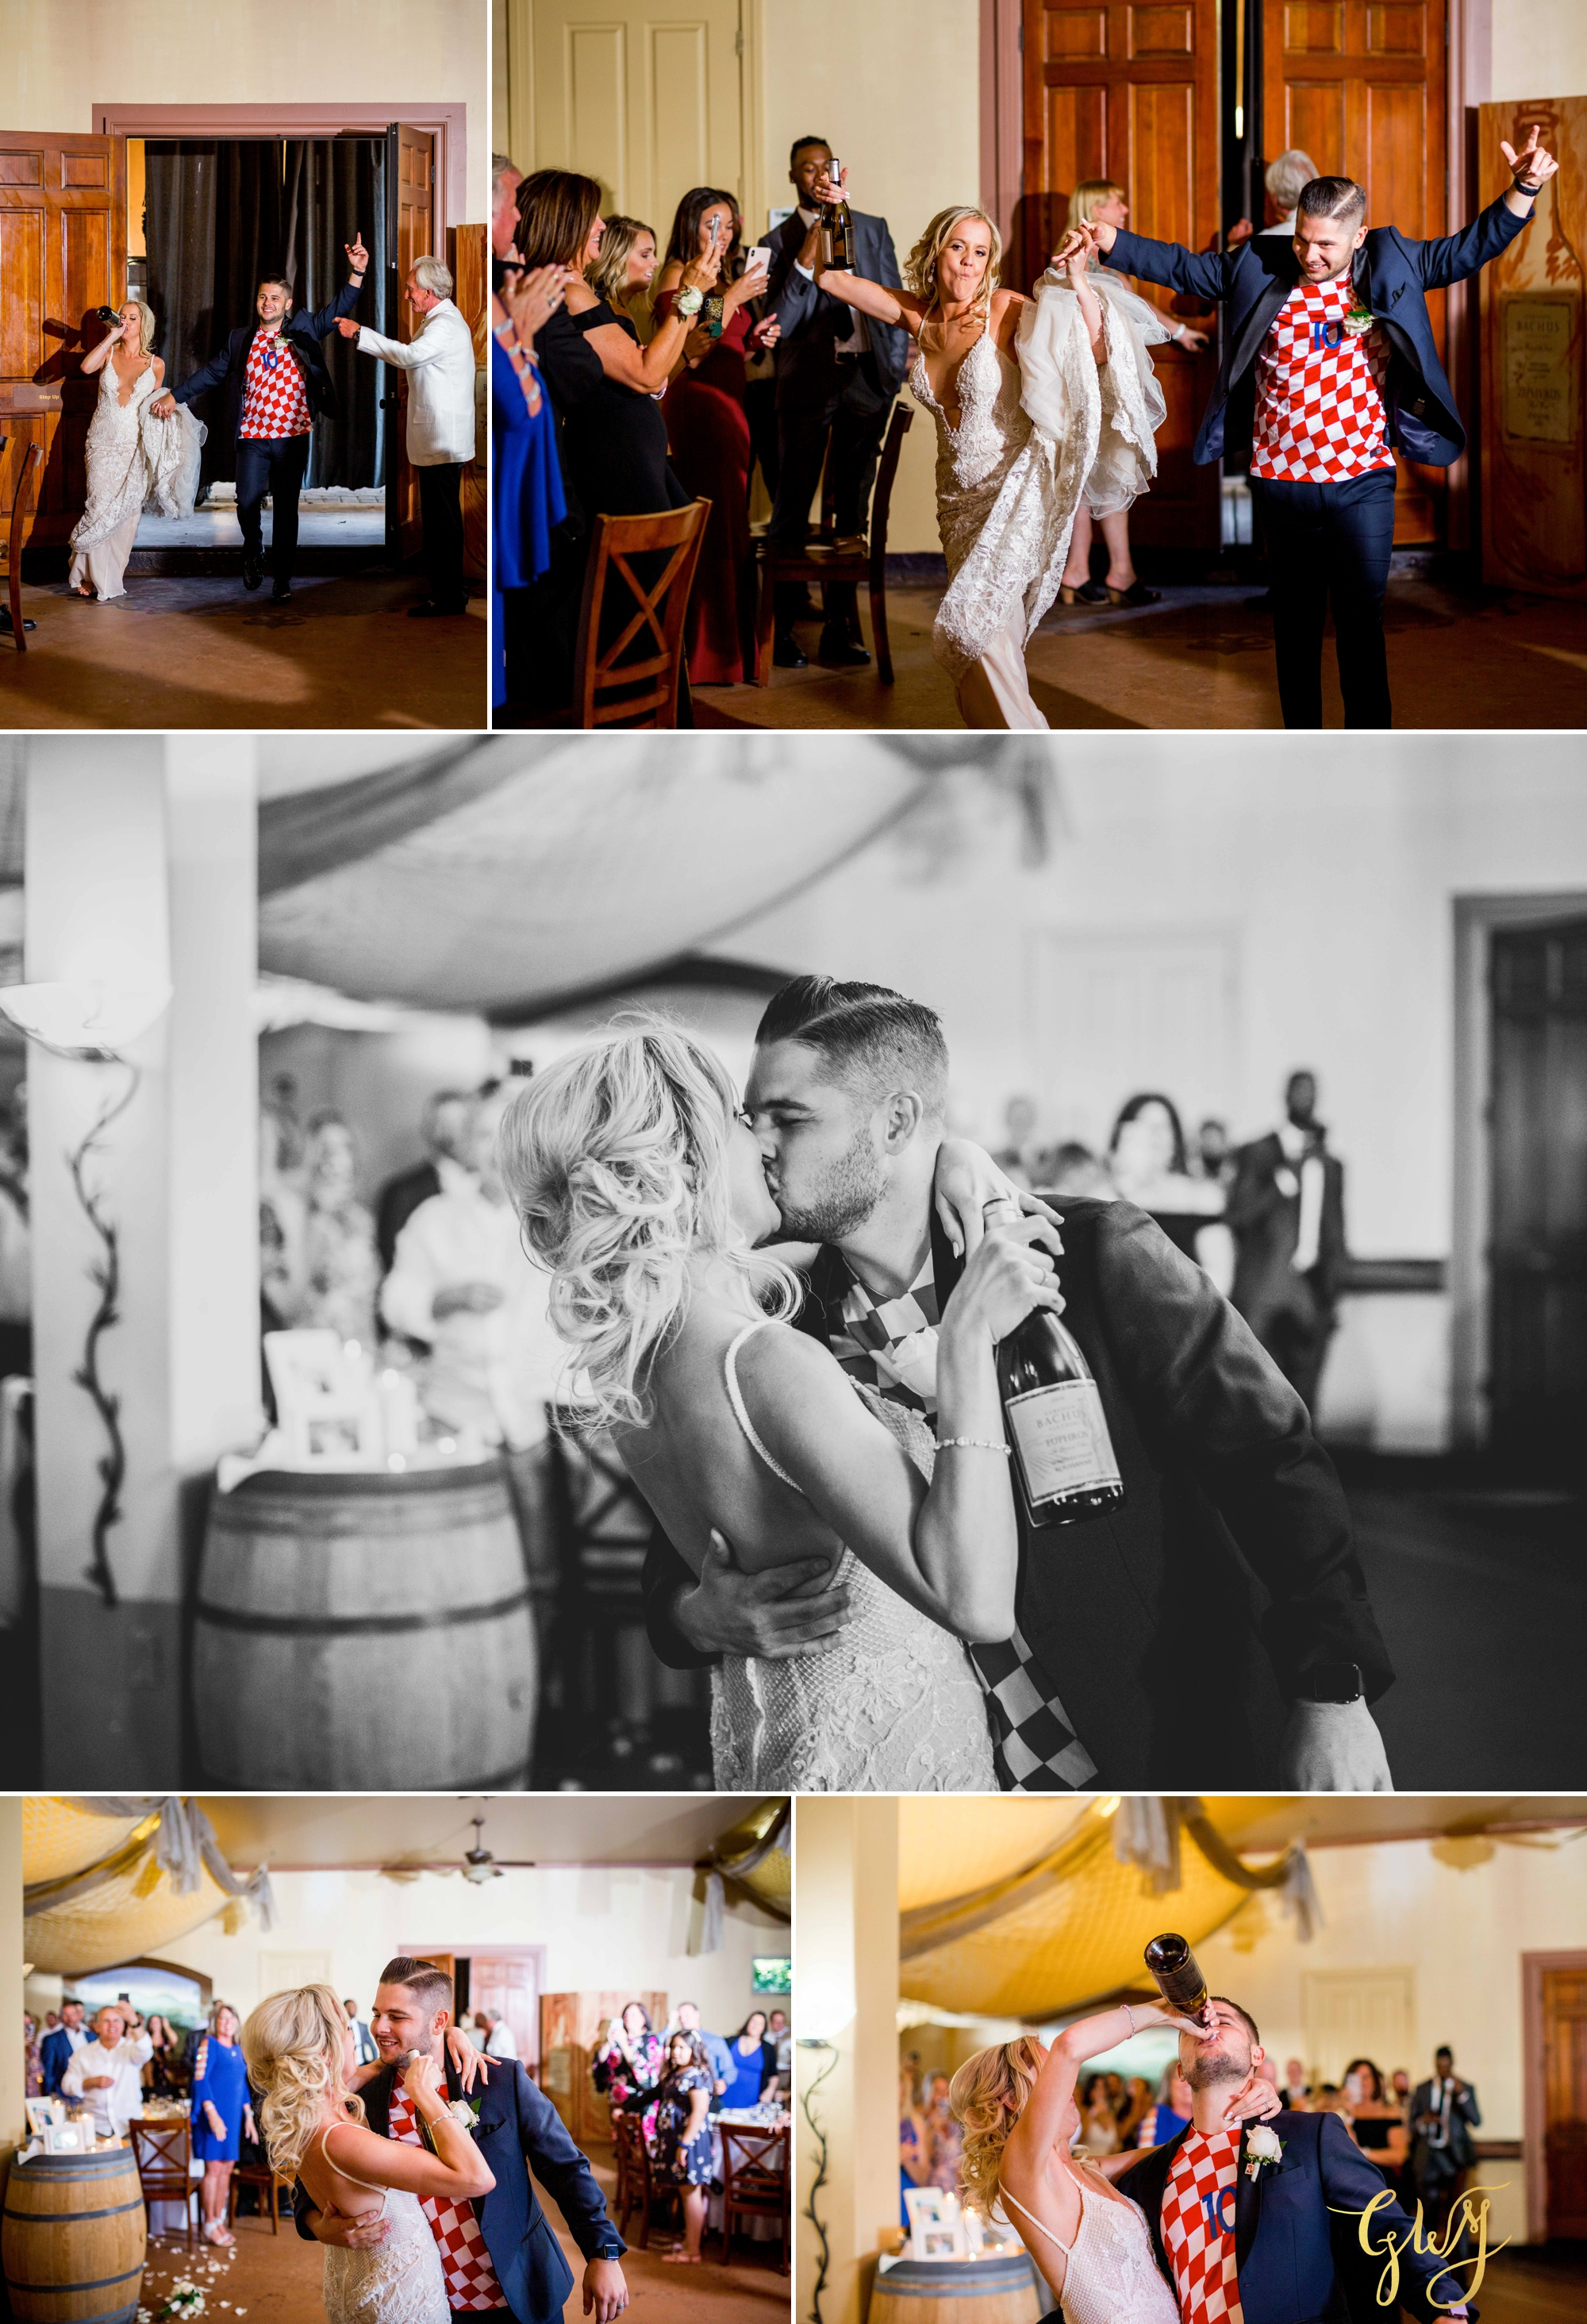 Kristen + Krsto's Romantic Temecula Winery Spring Wedding by Glass Woods Media 48.jpg